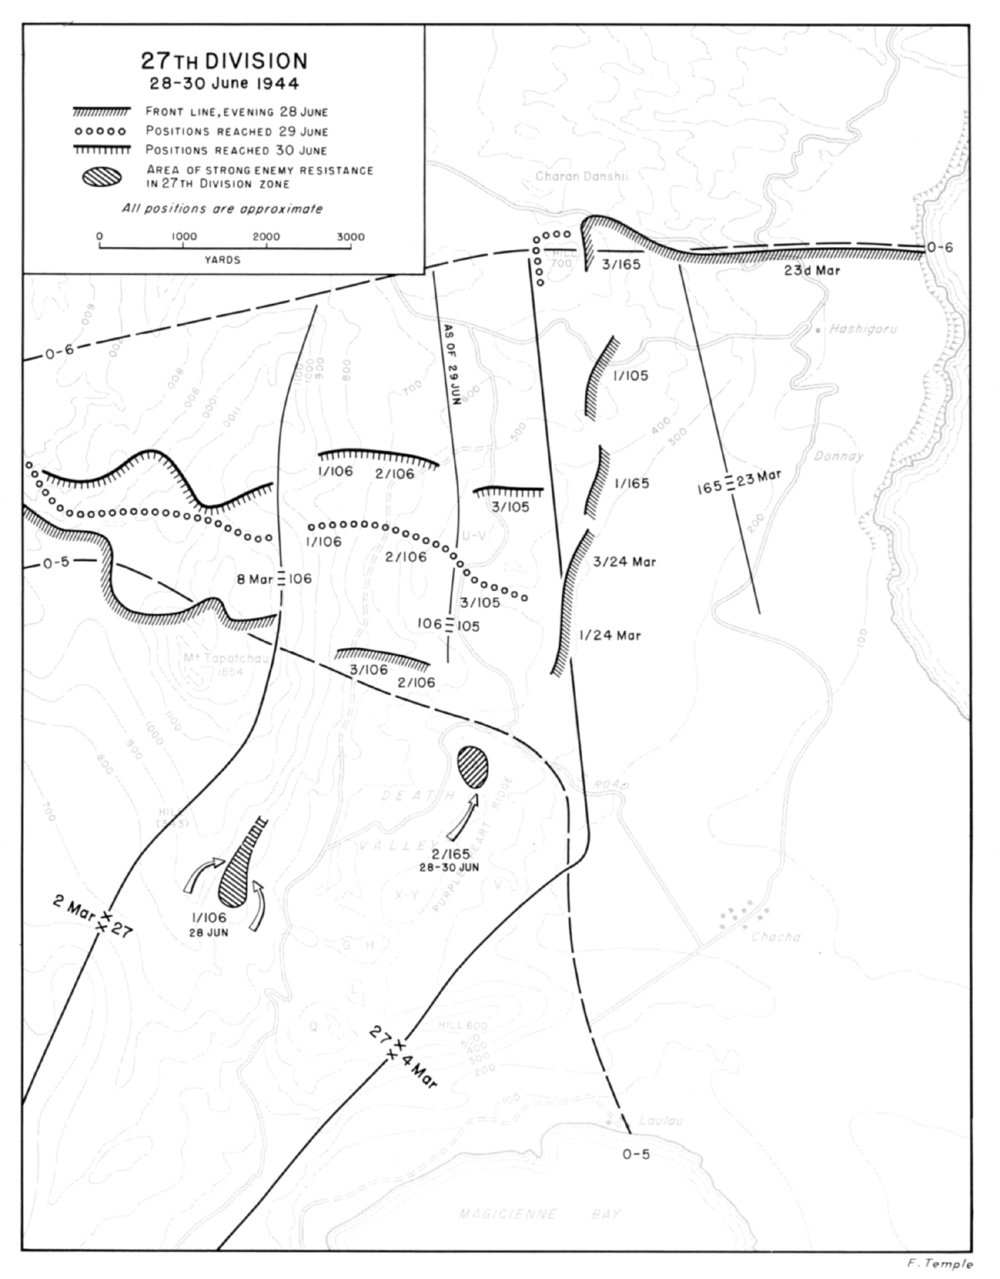 hyperwar us army in wwii c aign in the marianas 104th Division Army Reserve 27th division 28 30 june 1944